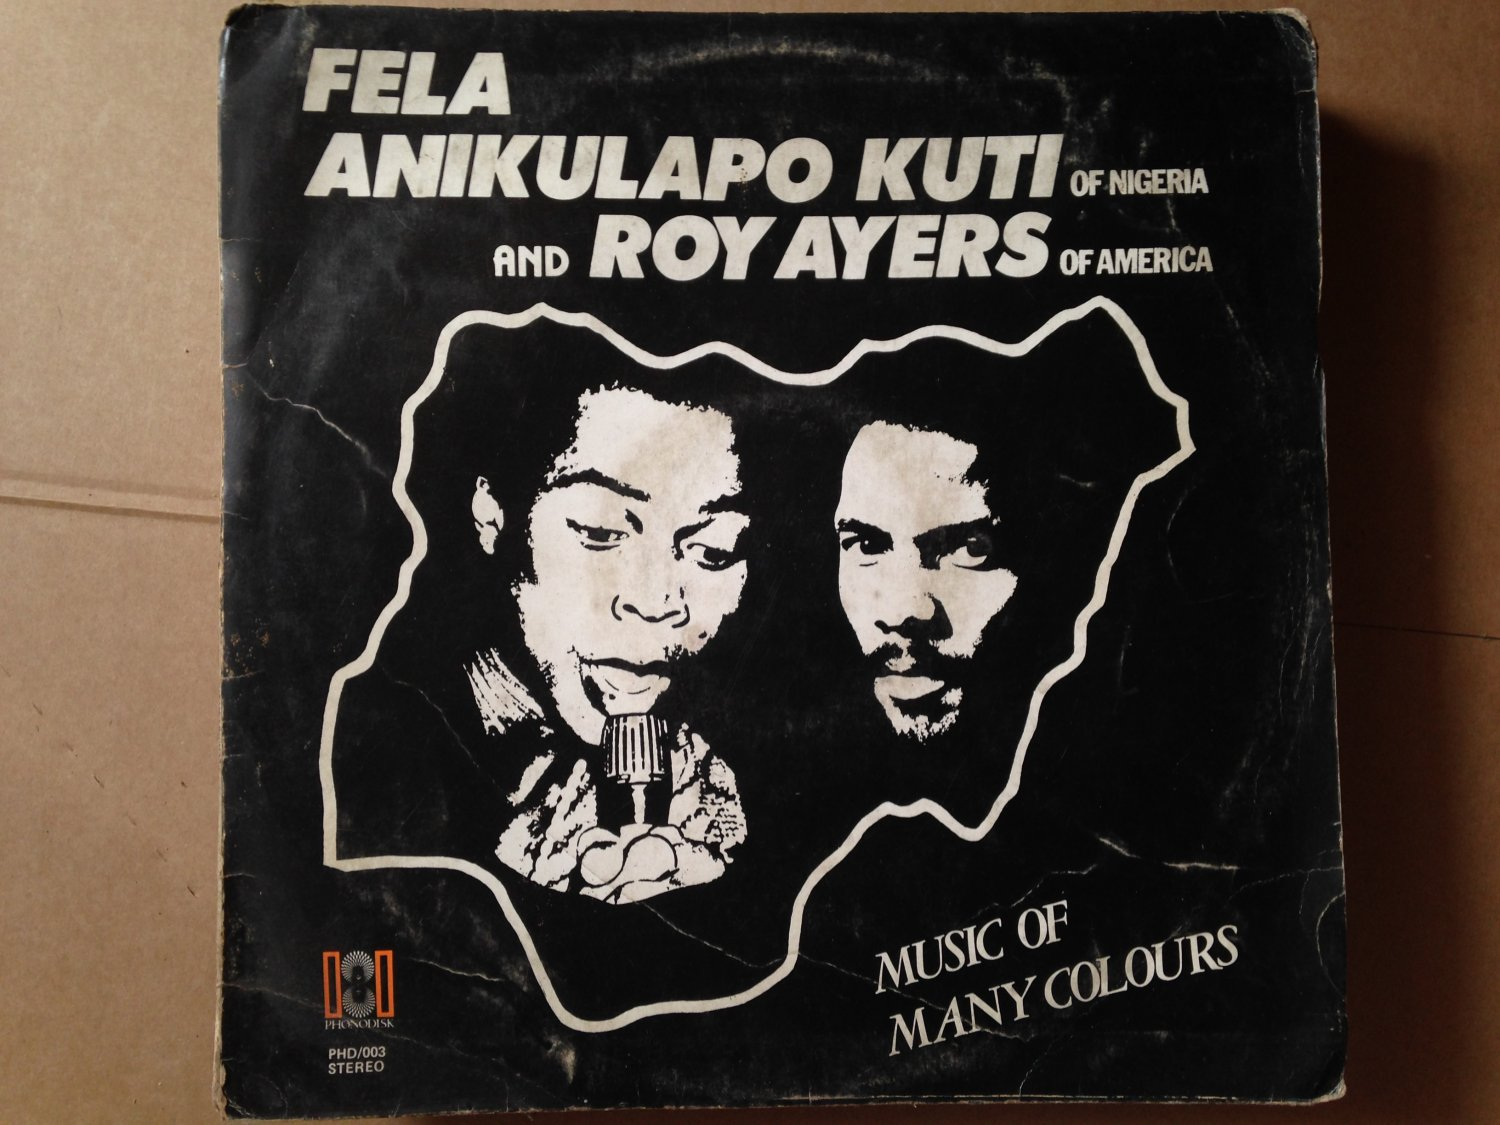 FELA & ROY AYERS LP music of many colors NIGERIA AFRO BEAT AFRO FUNK mp3 LISTEN